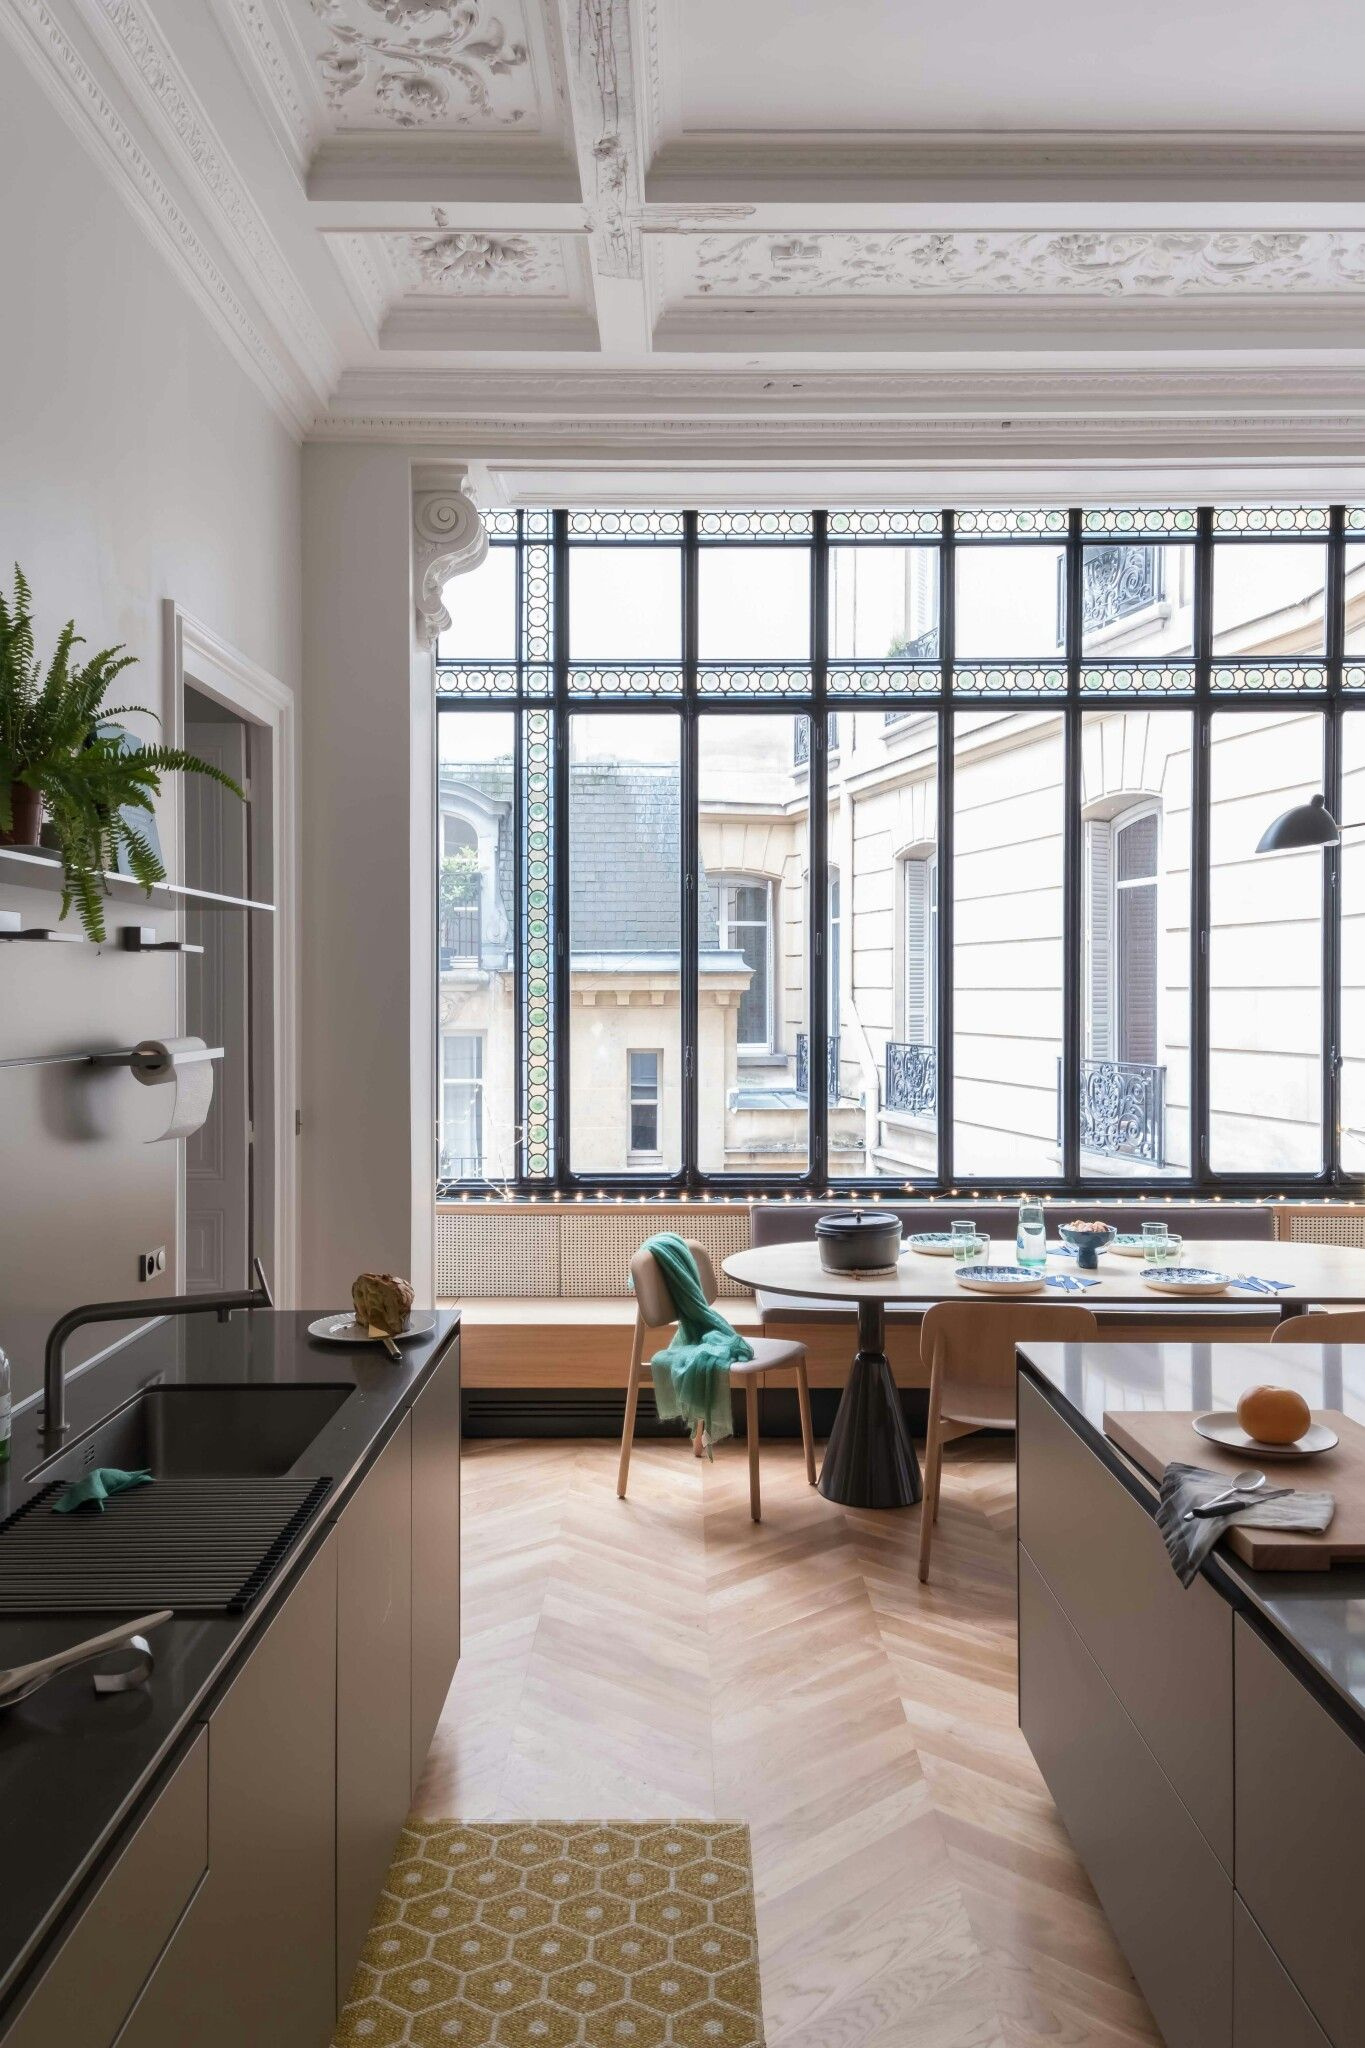 Appartement Interieur Luxe Ceiling Is Too Much And Kitchen Too Minimalist But I Like The